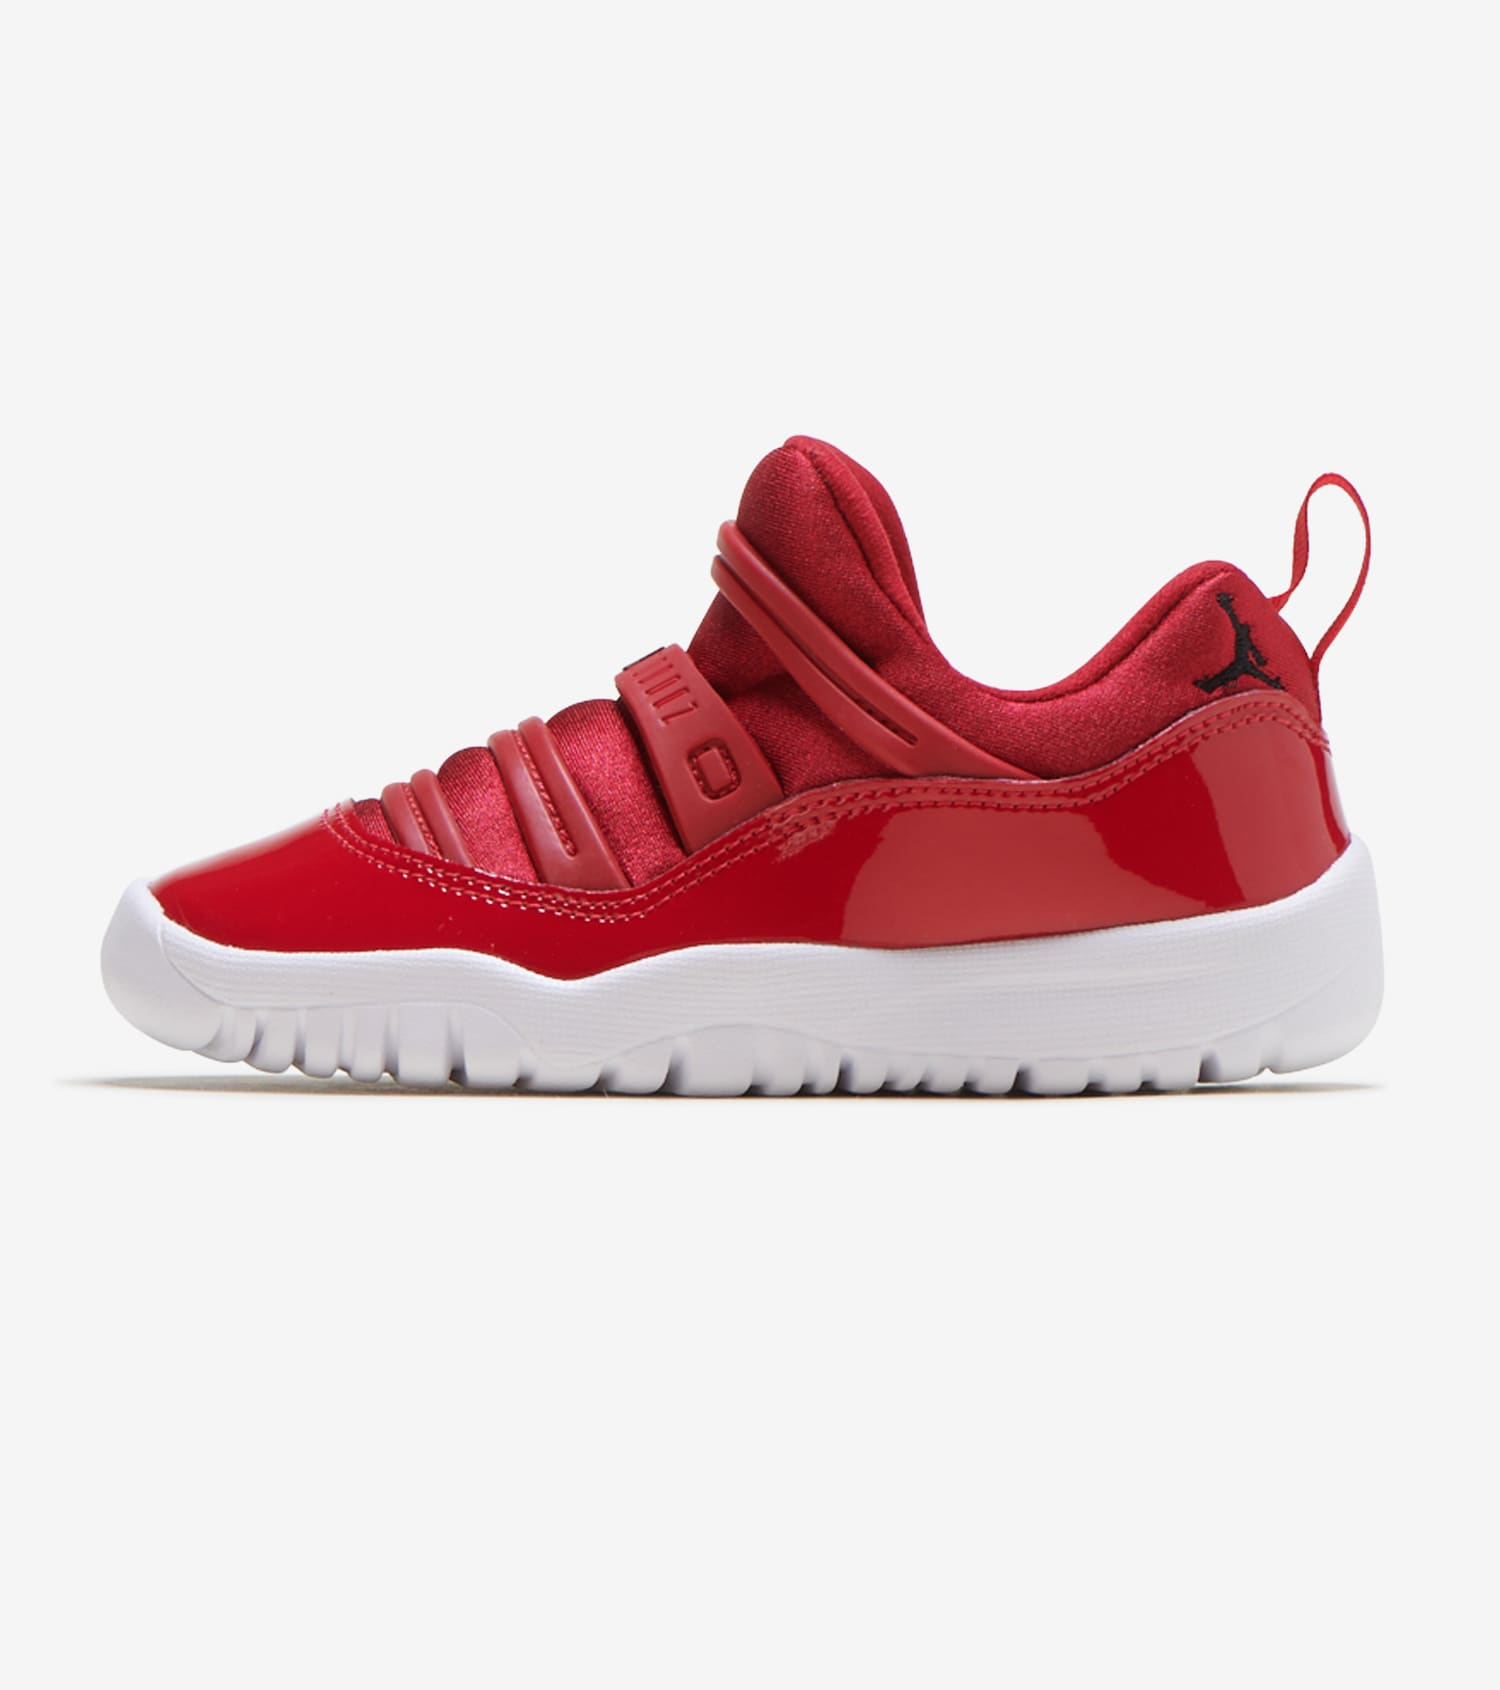 low priced e0ab3 beb5e Jordan Air Jordan Retro 11 Little Flex (Red) - BQ7102-623 ...